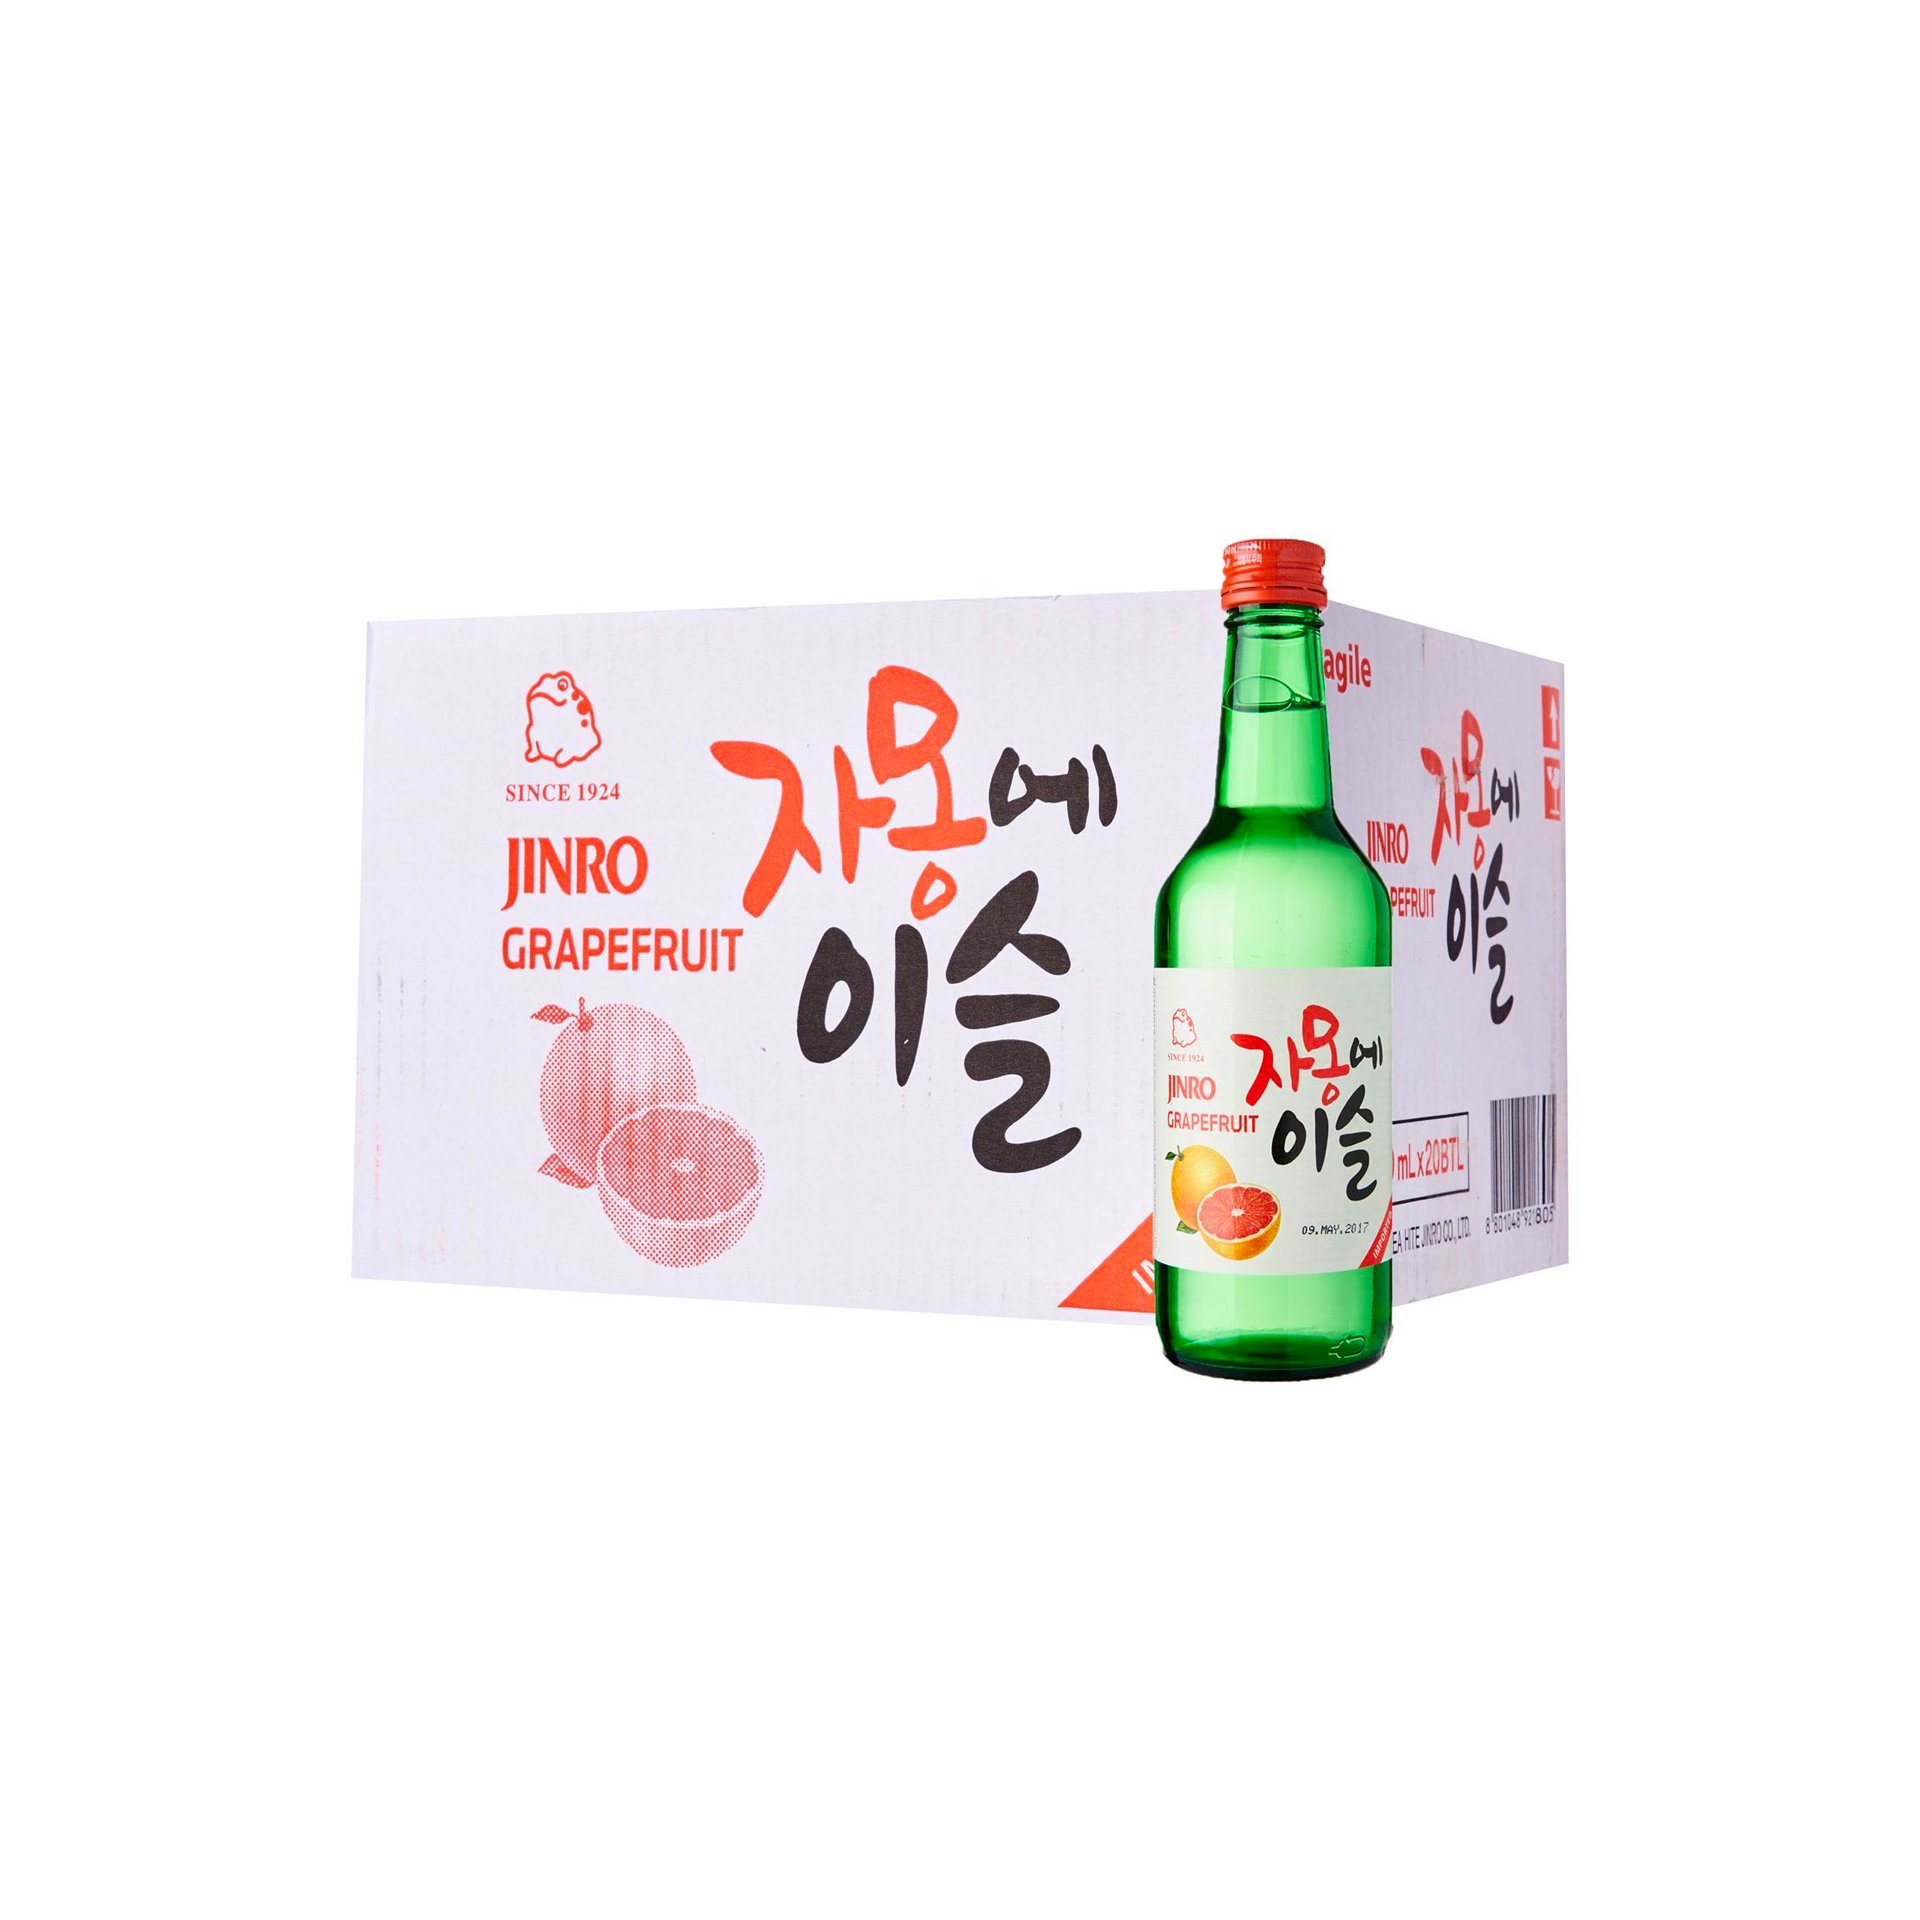 Chamisul Jinro Grapefruit Soju (20 x 360ml)